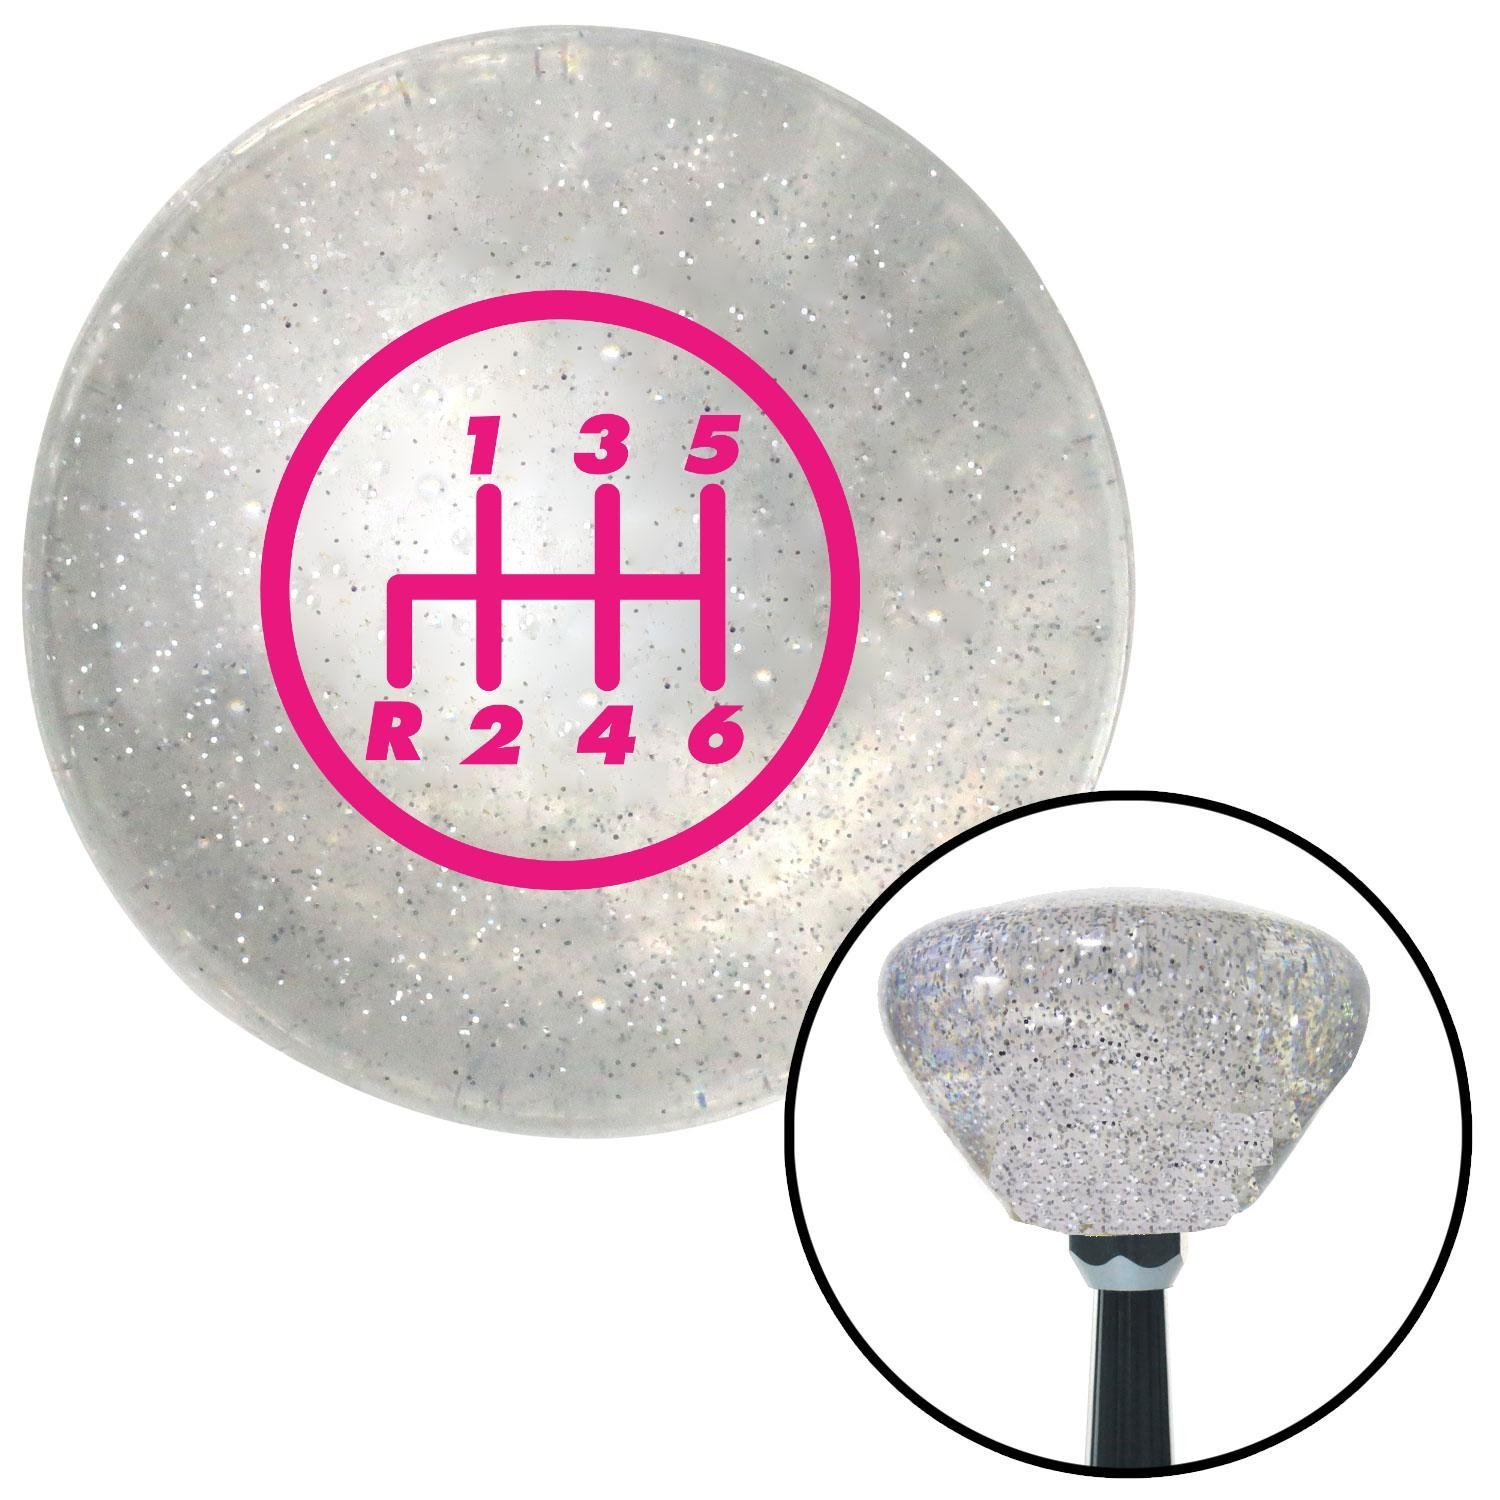 Pink 6 Speed Shift Pattern - 6RDL American Shifter 159161 Clear Retro Metal Flake Shift Knob with M16 x 1.5 Insert